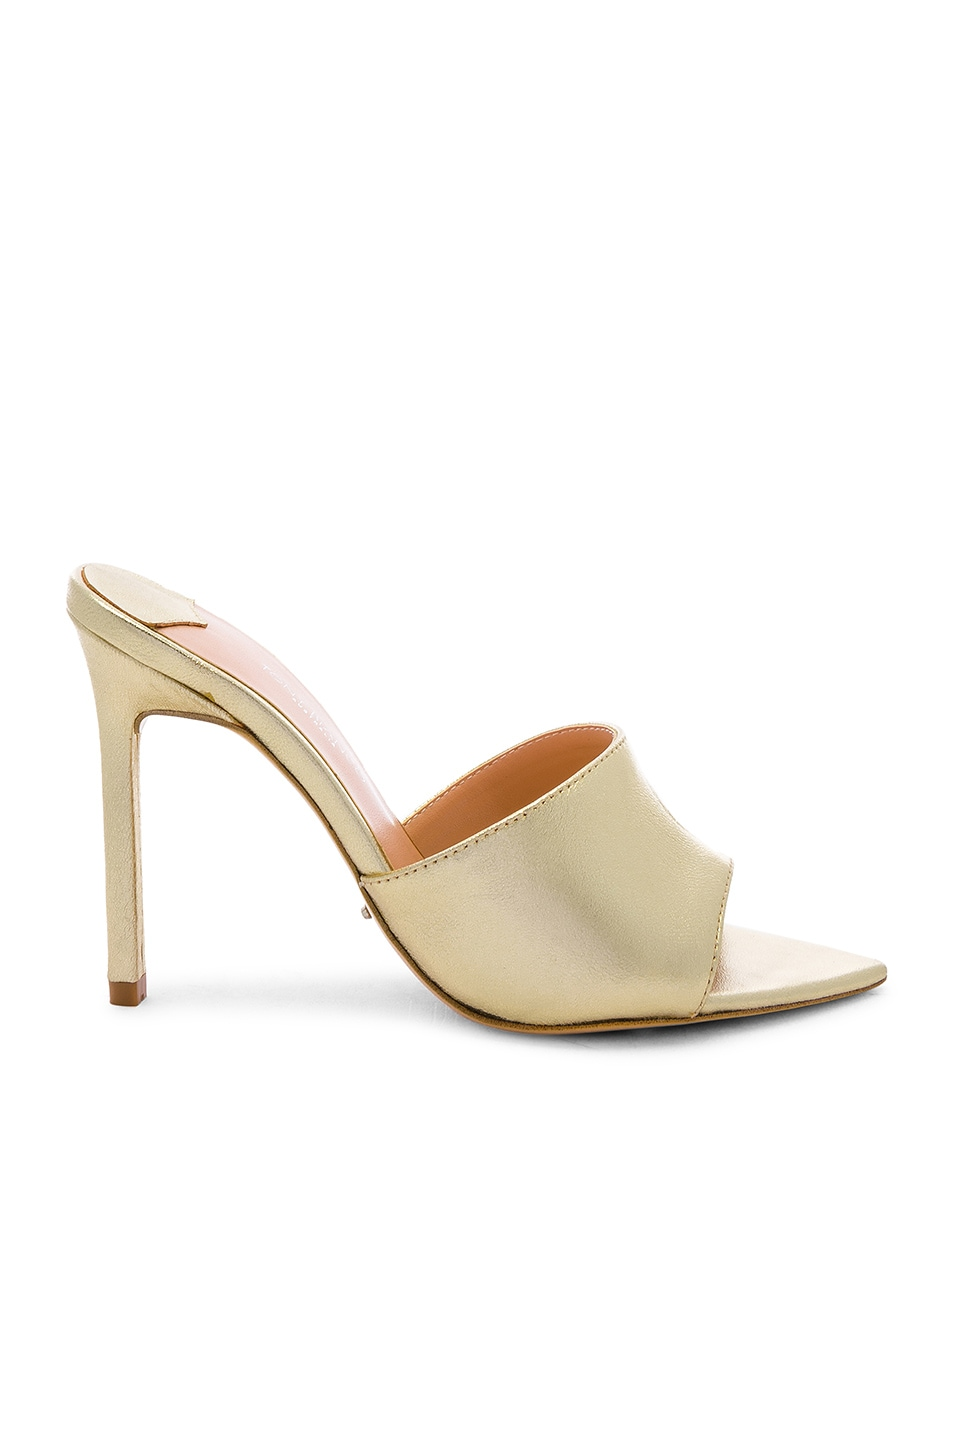 Tony Bianco Marley Mule in Gold Nappa Metallic